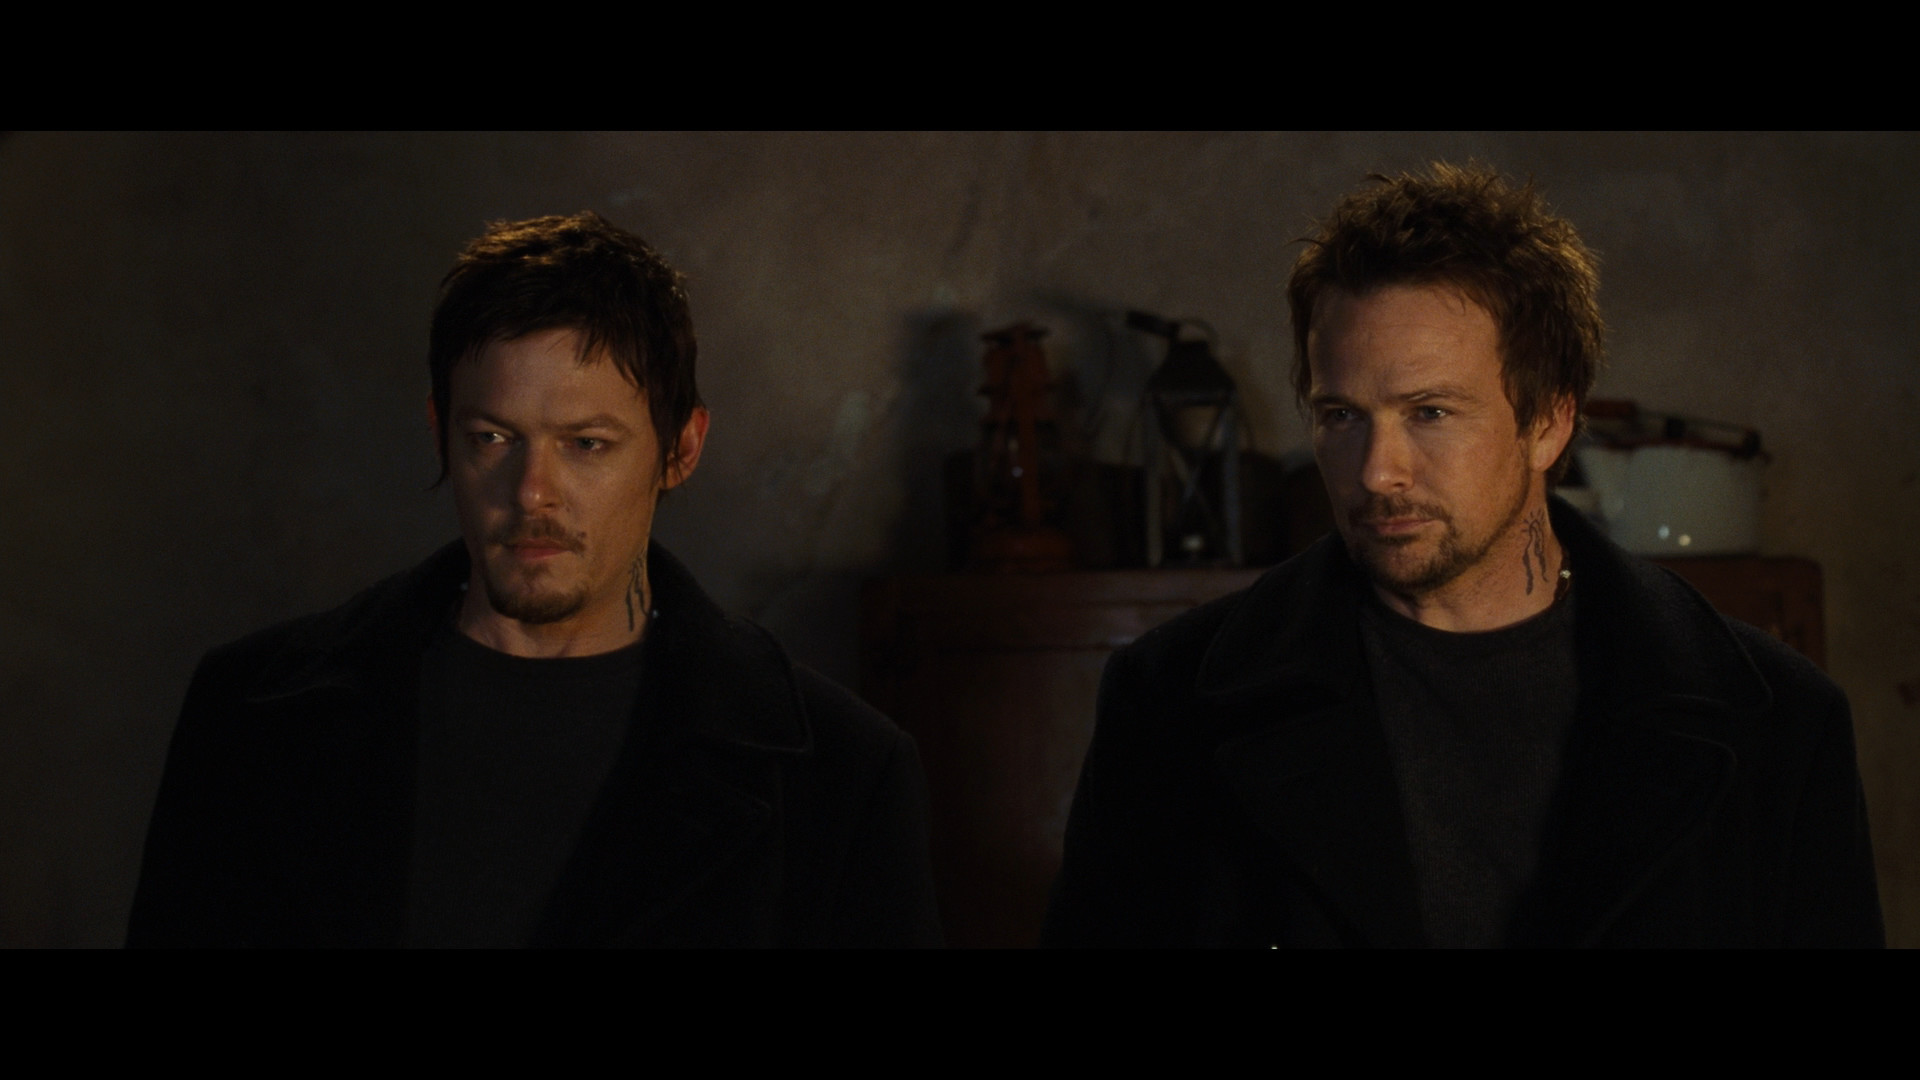 The boondock saints 2 all saints day 5.png